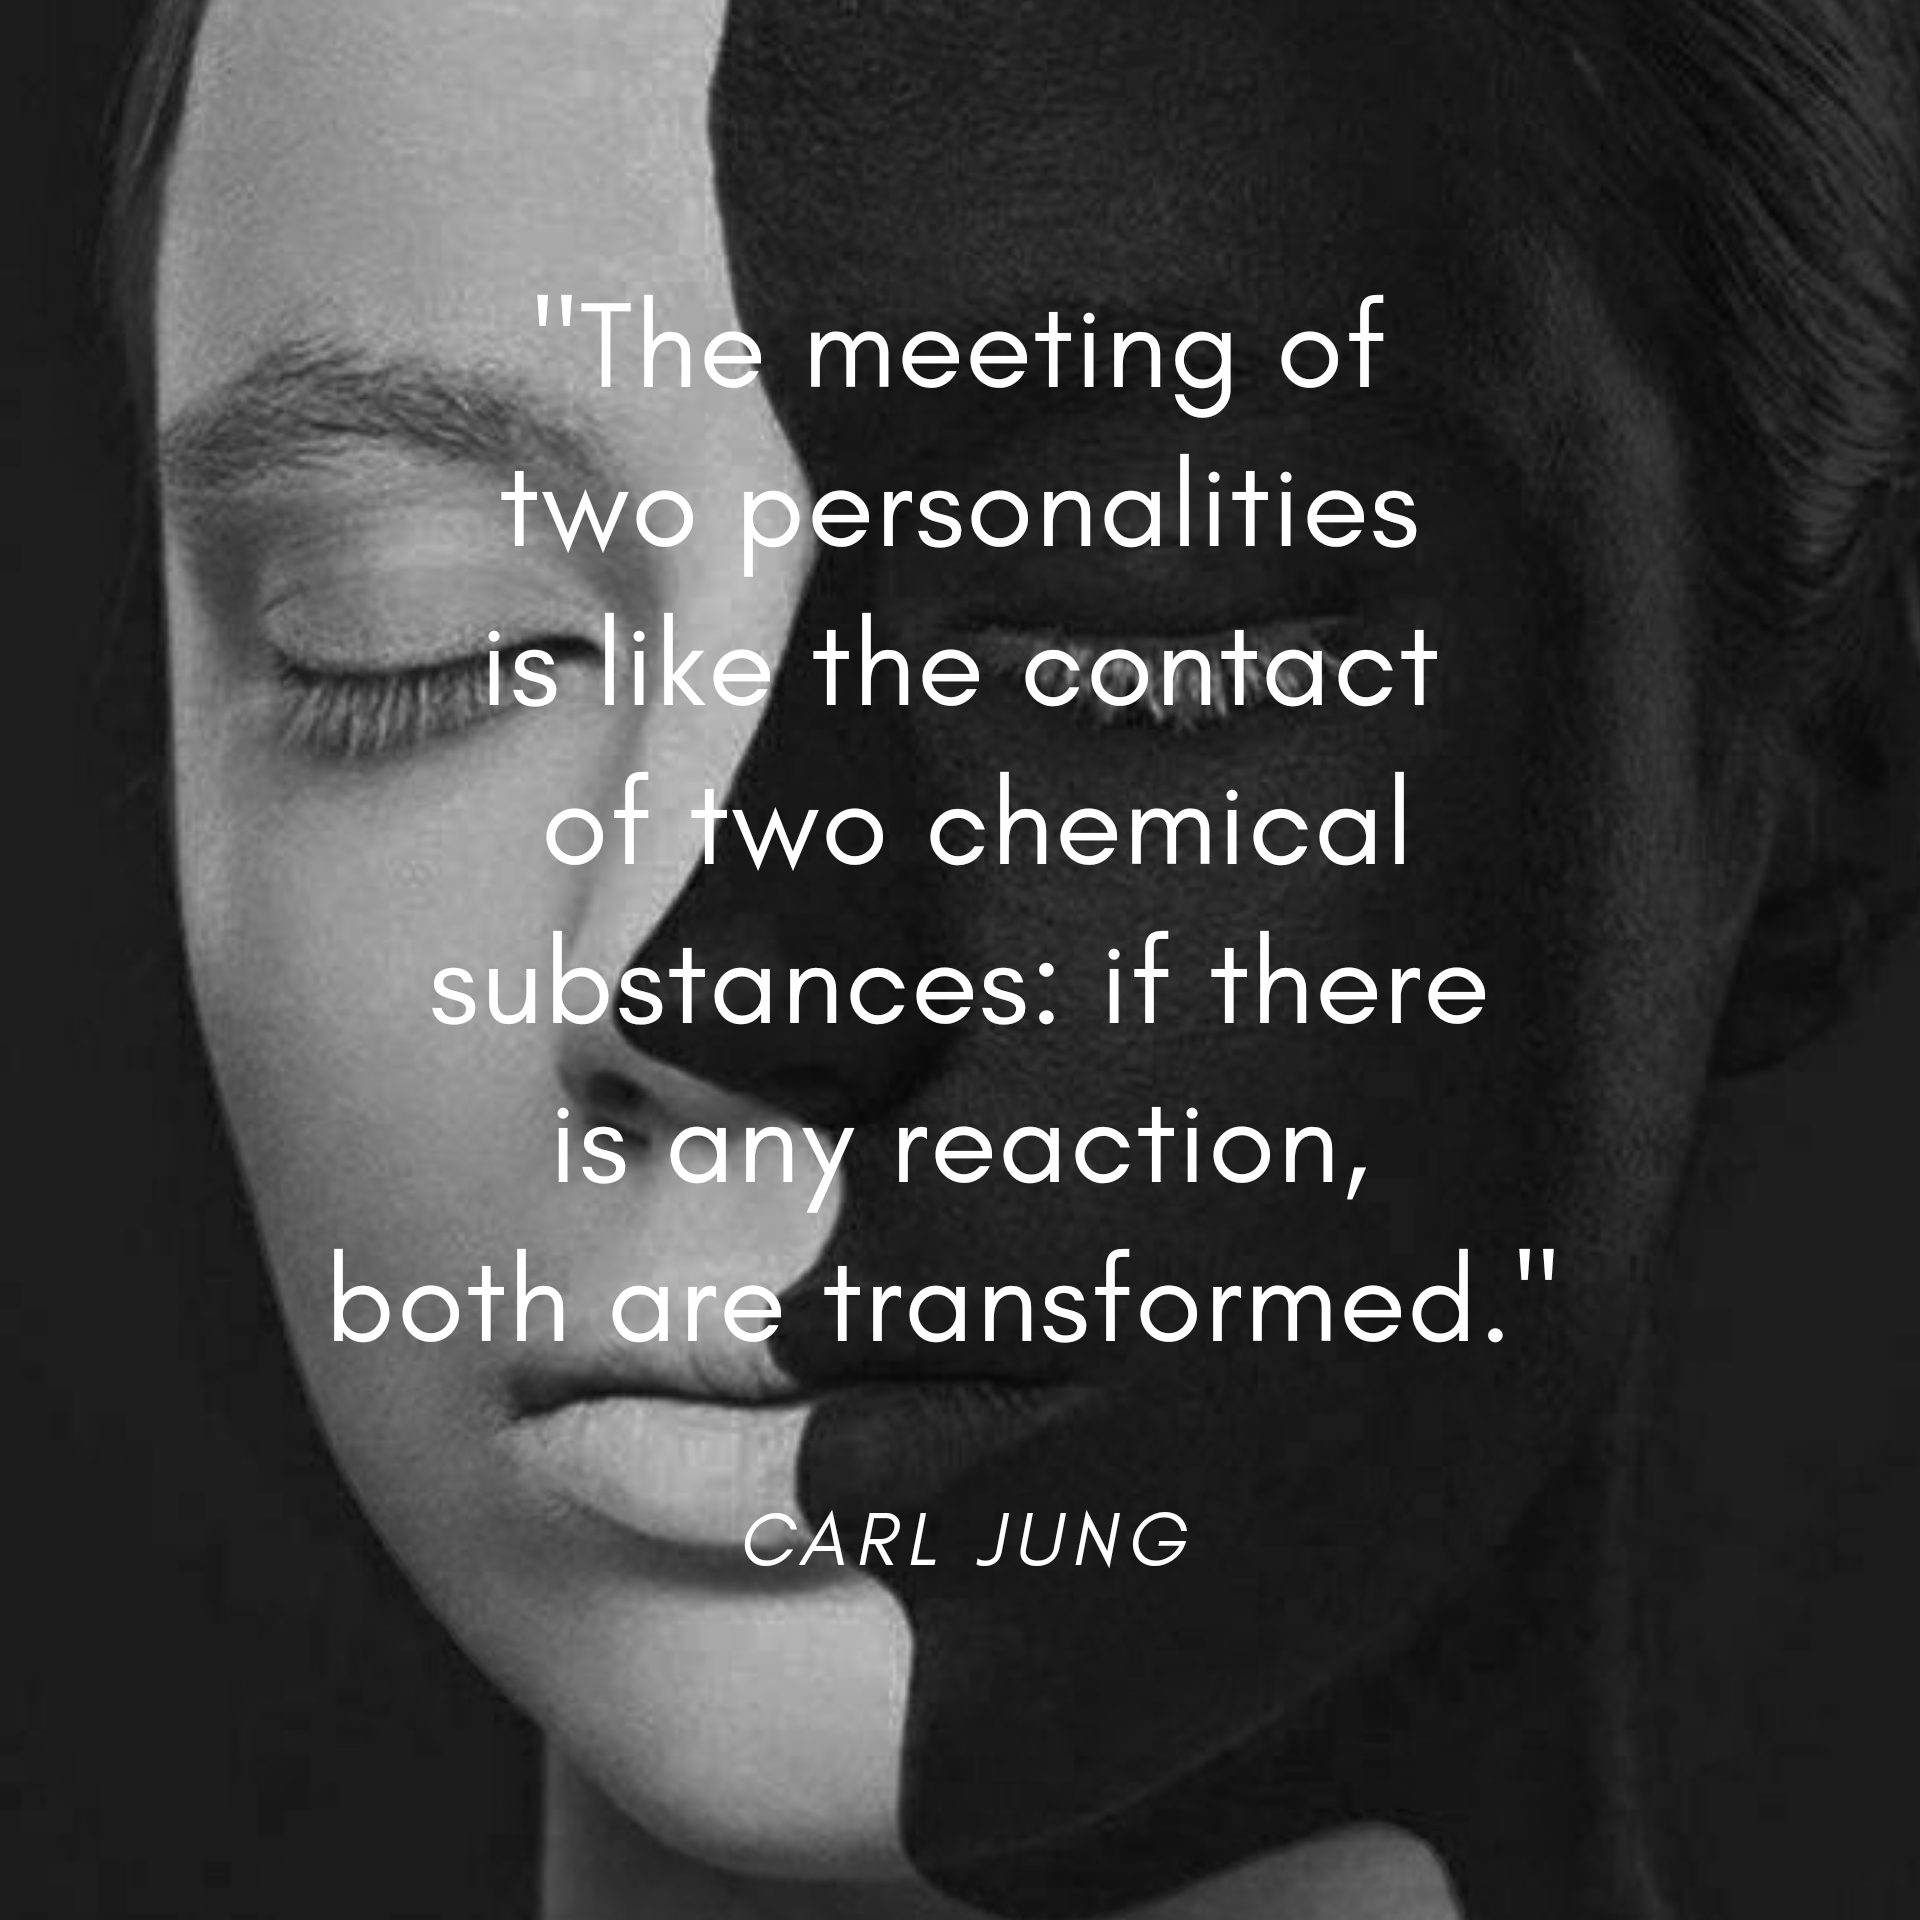 """If there is any reaction, both are transformed"" – Carl Jung [1920×1920]"